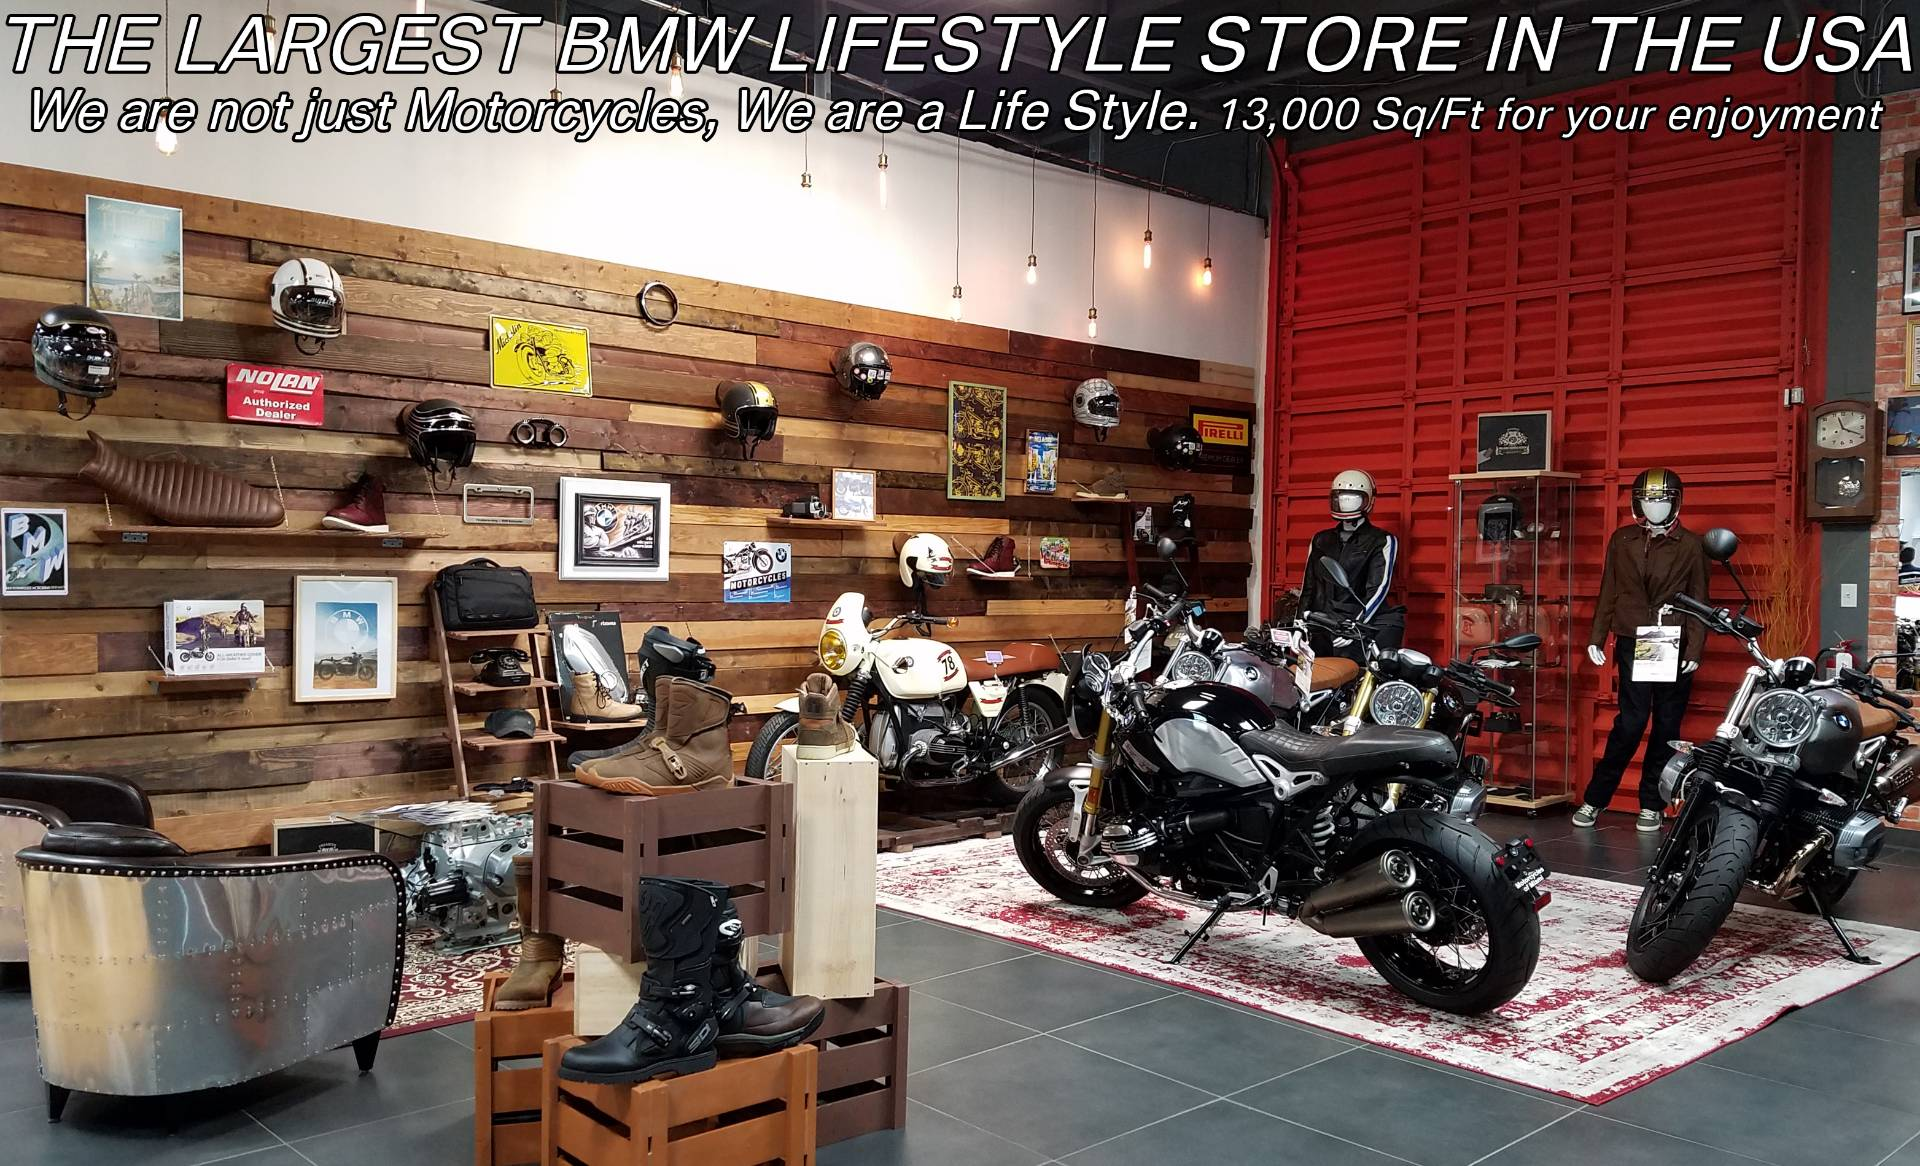 Used 2011 BMW R 1200 GS For Sale, Pre Owned BMW R 1200GS For Sale, Pre-Owned BMW Motorcycle R1200GS, BMW Motorcycle, GS, BMW - Photo 35